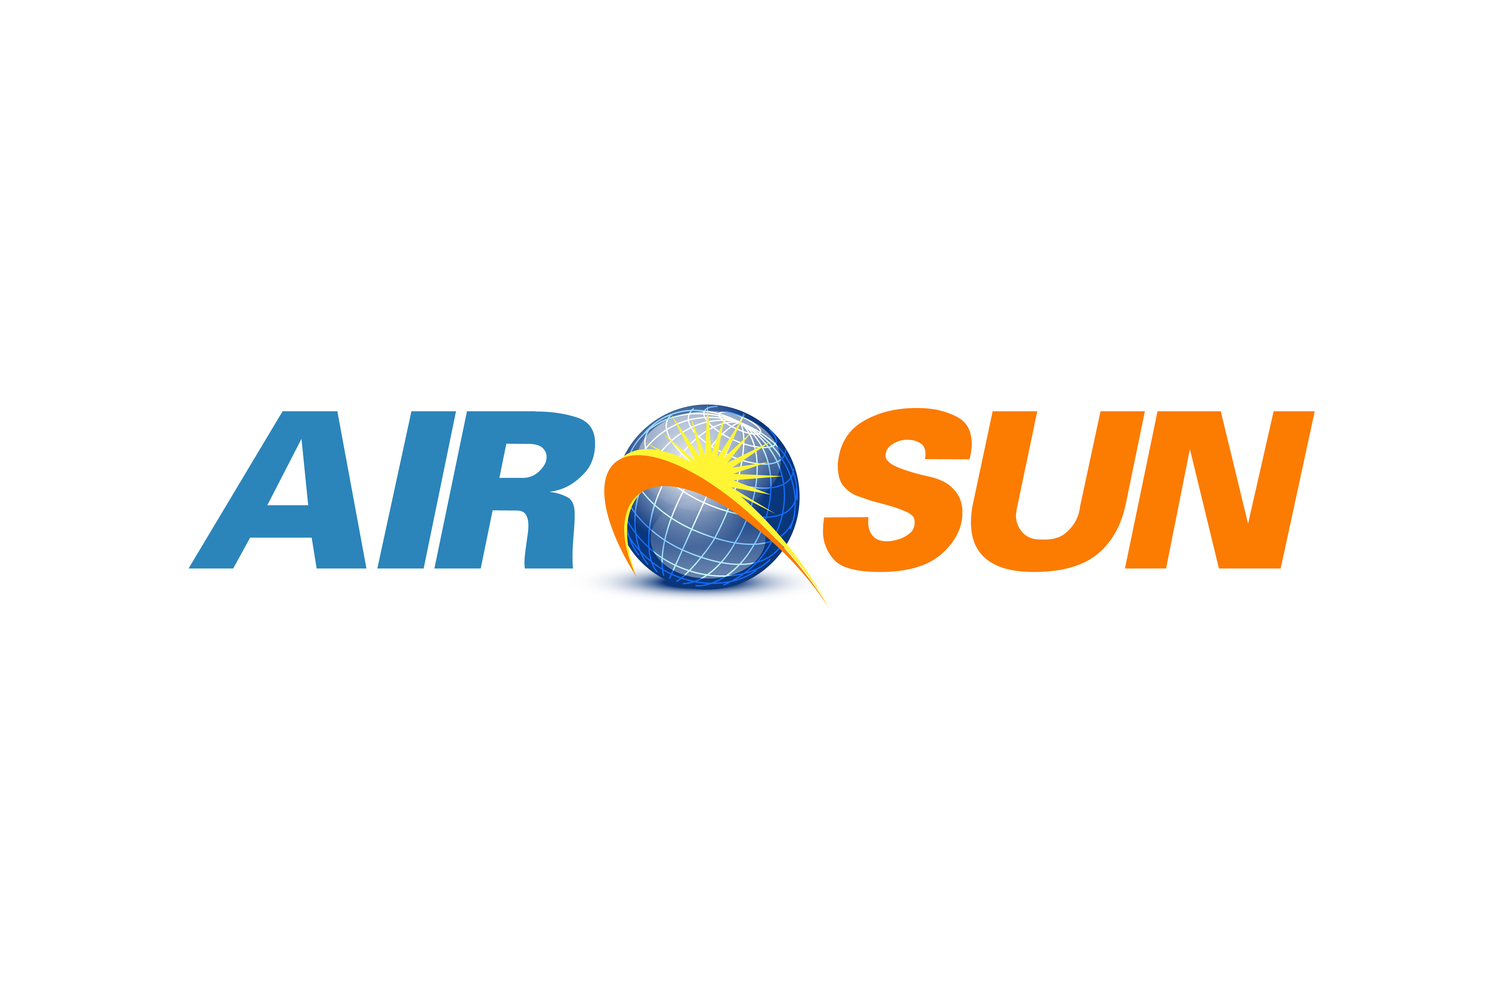 AIR SUN SOLAR: Clean, Simple, Yours.